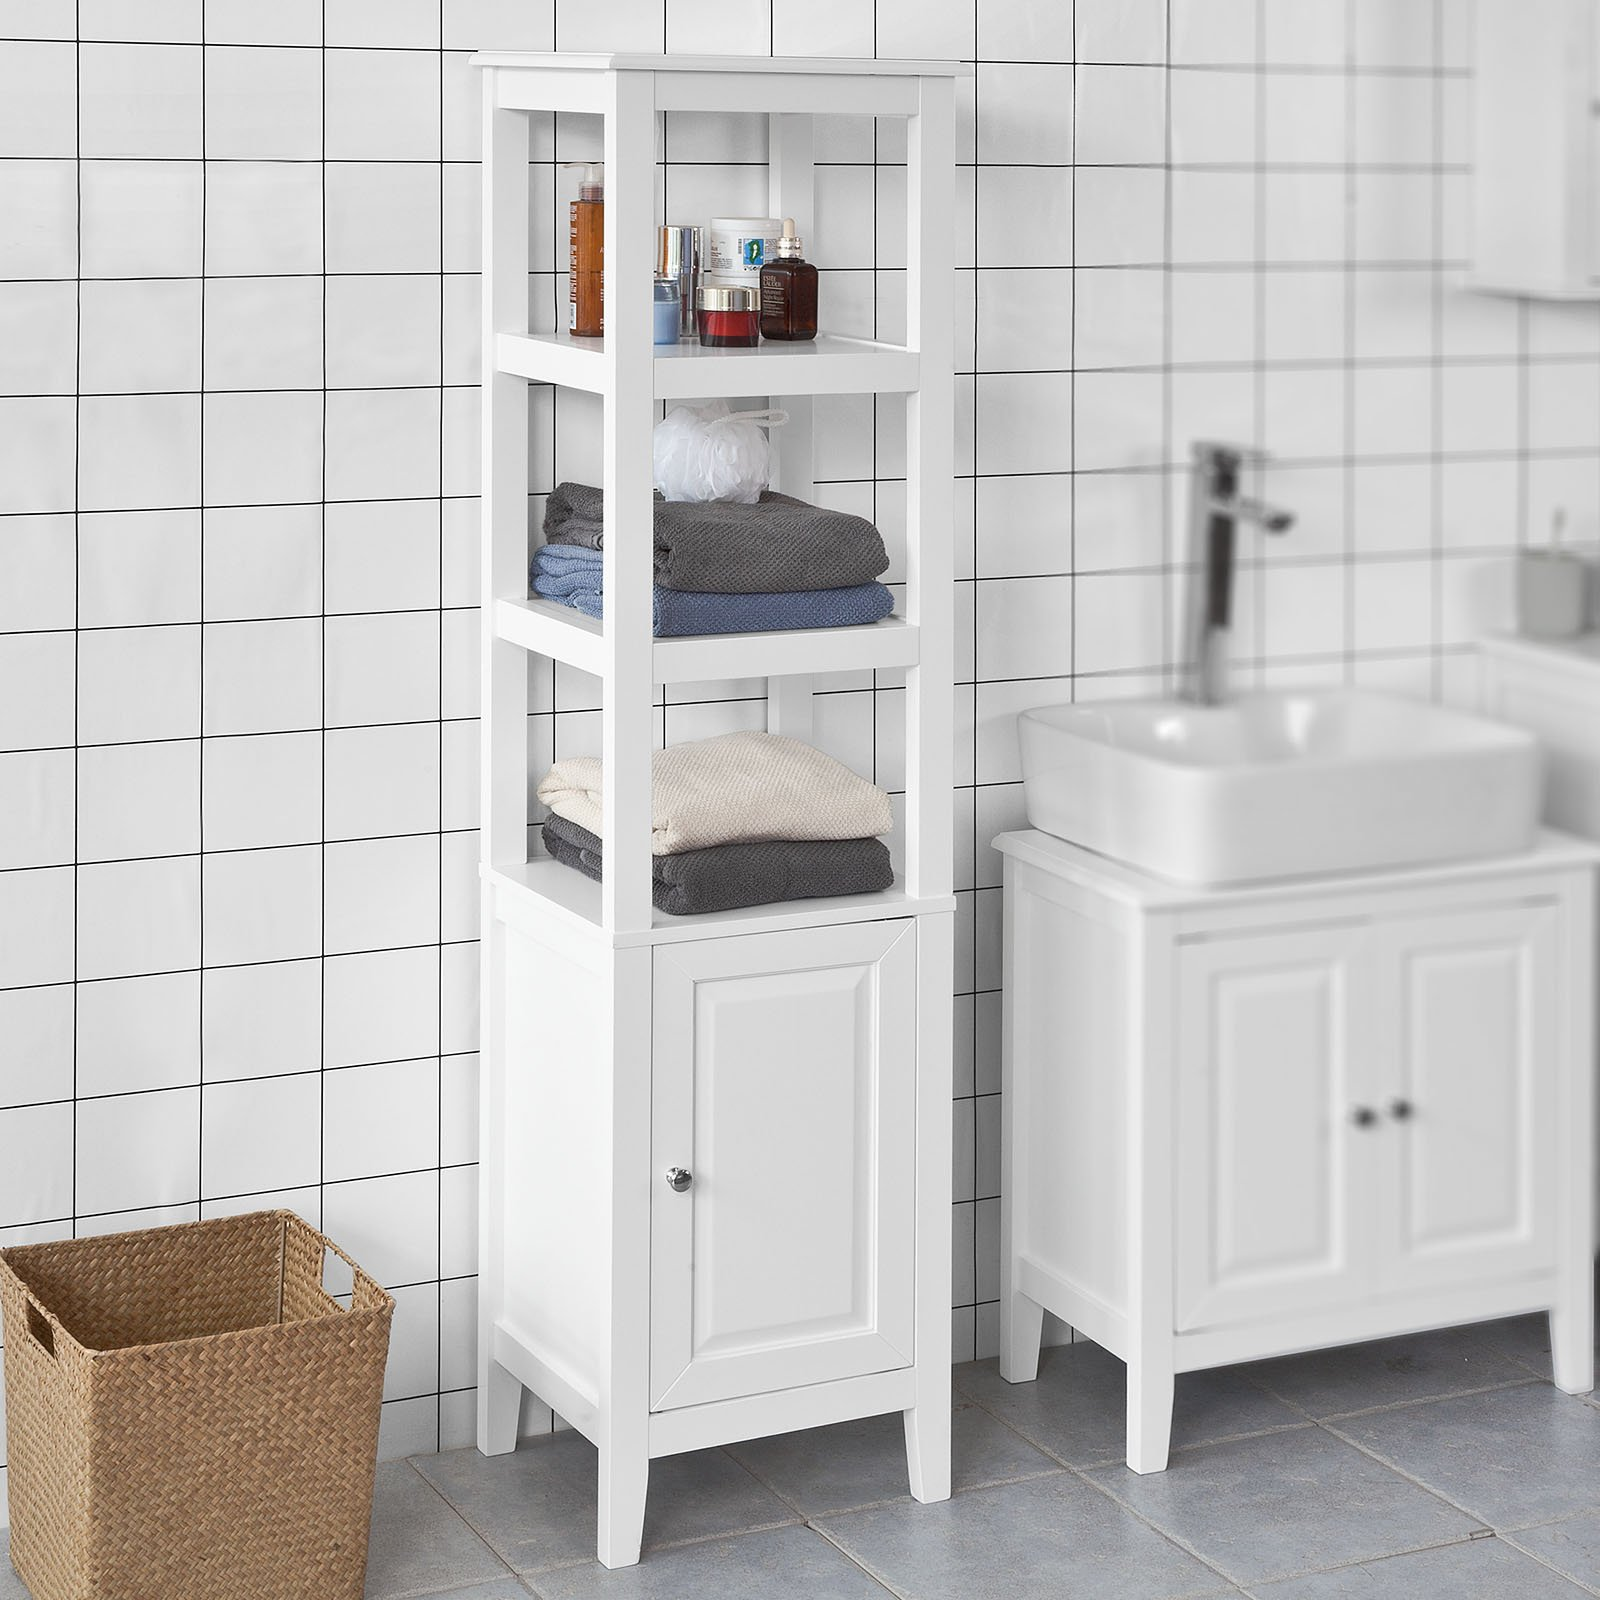 Haotian White Floor Standing Tall Bathroom Storage Cabinet with 3 Shelves and 1Door,Linen Tower Bath Cabinet, Cabinet with Shelf (FRG205-W)